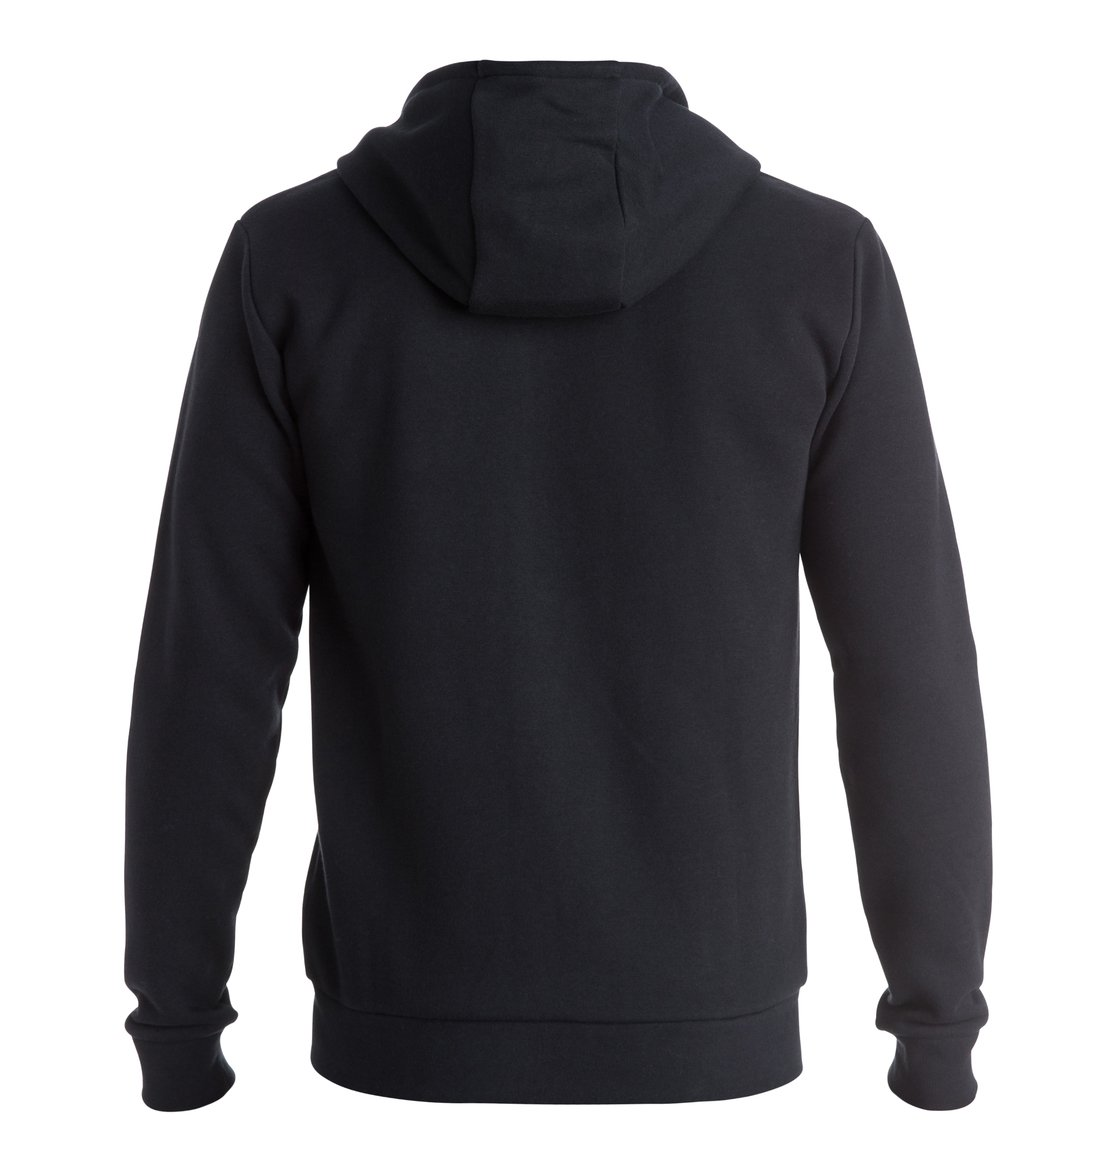 dc shoes hookup Dcshoes edyft03004 hookup zip-up hoodie shipping enjoy free shipping on all orders to the us and canada orders are shipped on business days only.